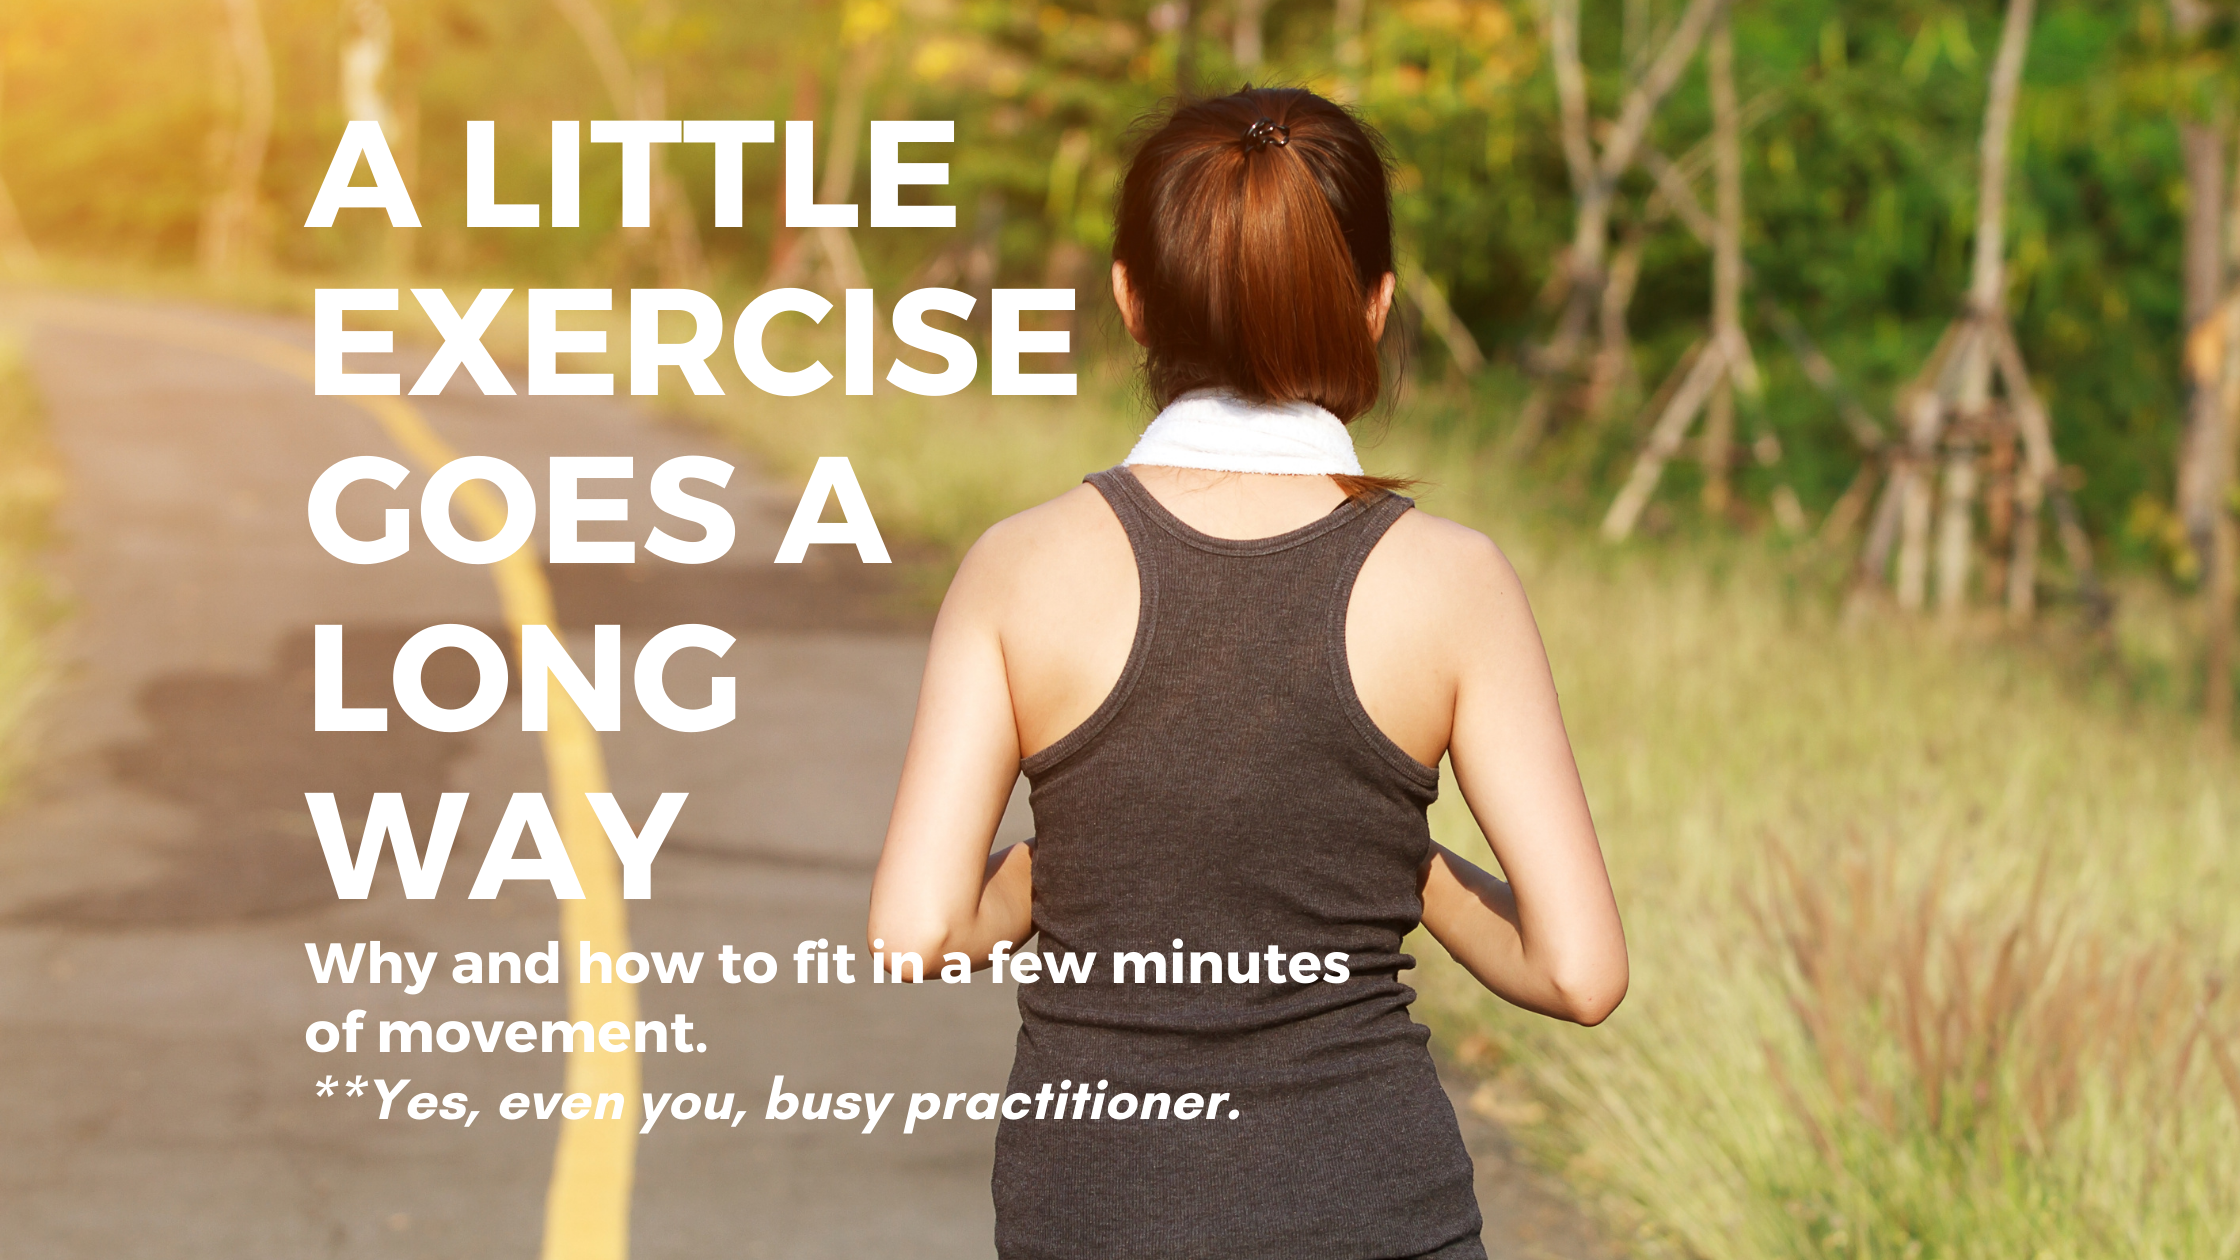 a little exercise goes a long way